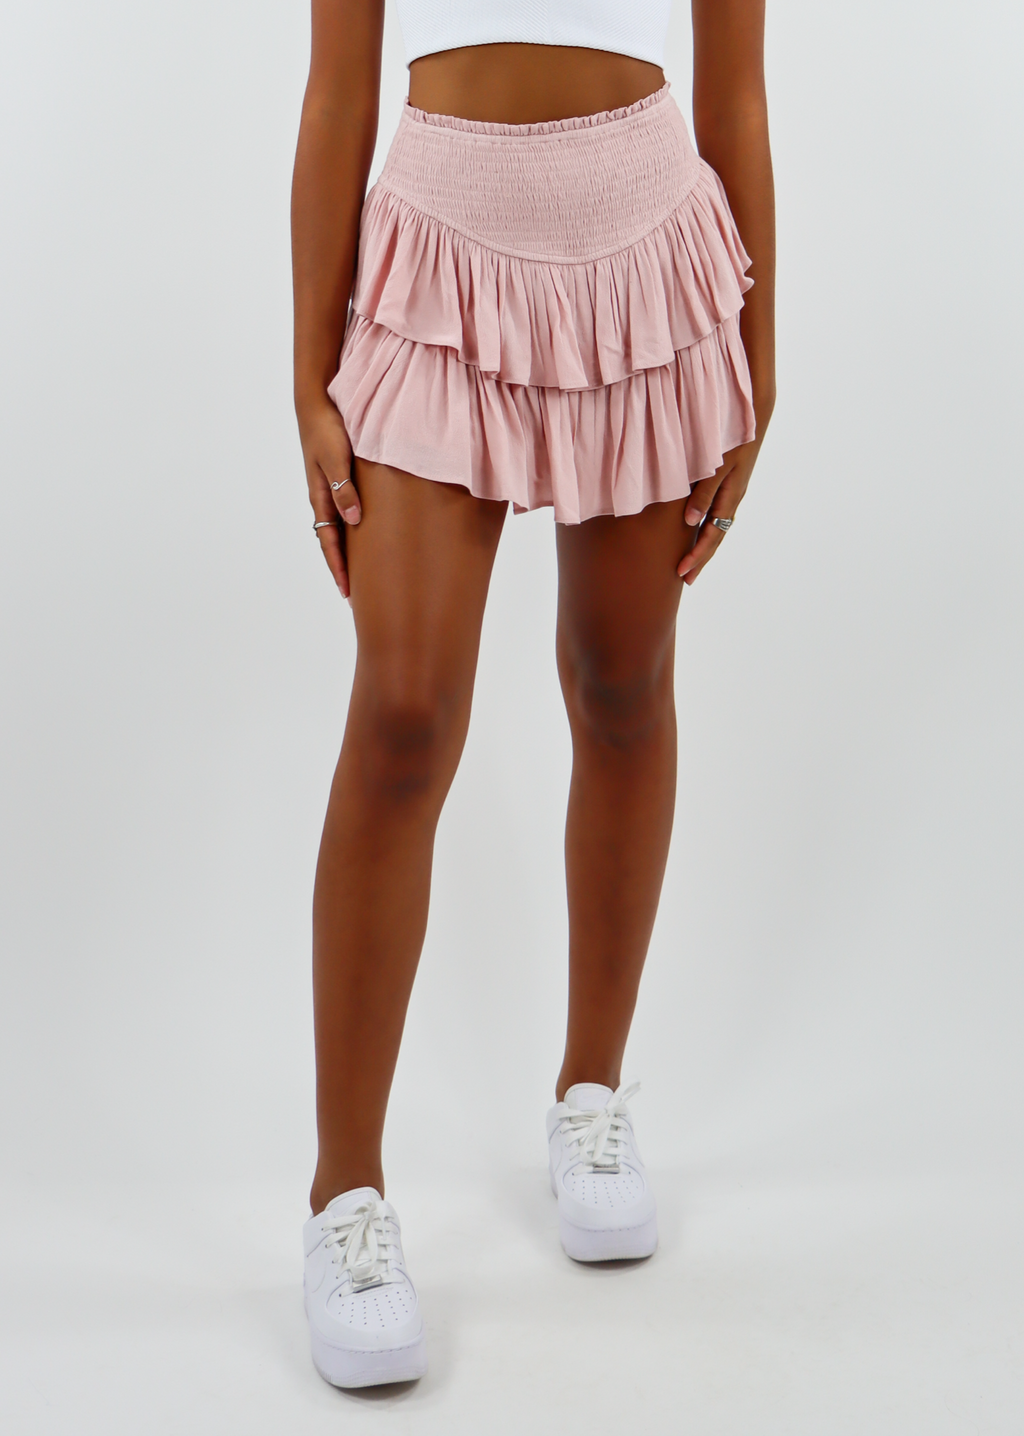 Sunshine Daydream Skirt ★ Dusty Rose